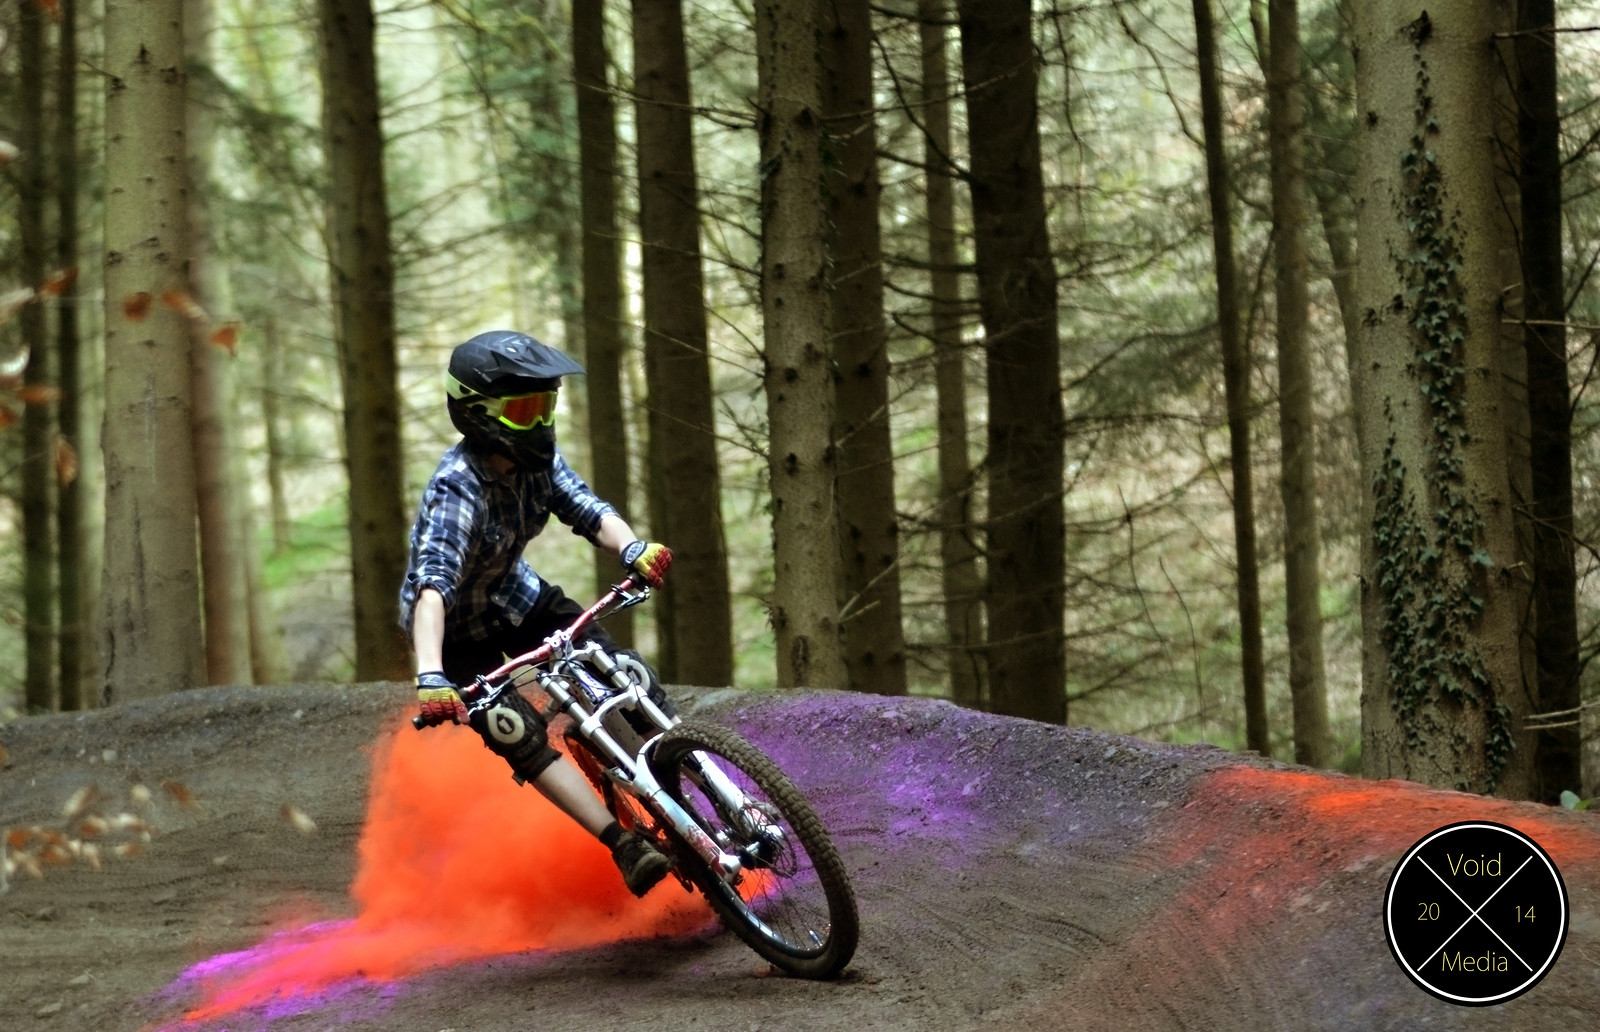 Drifting with style - Craighinch10 - Mountain Biking Pictures - Vital MTB